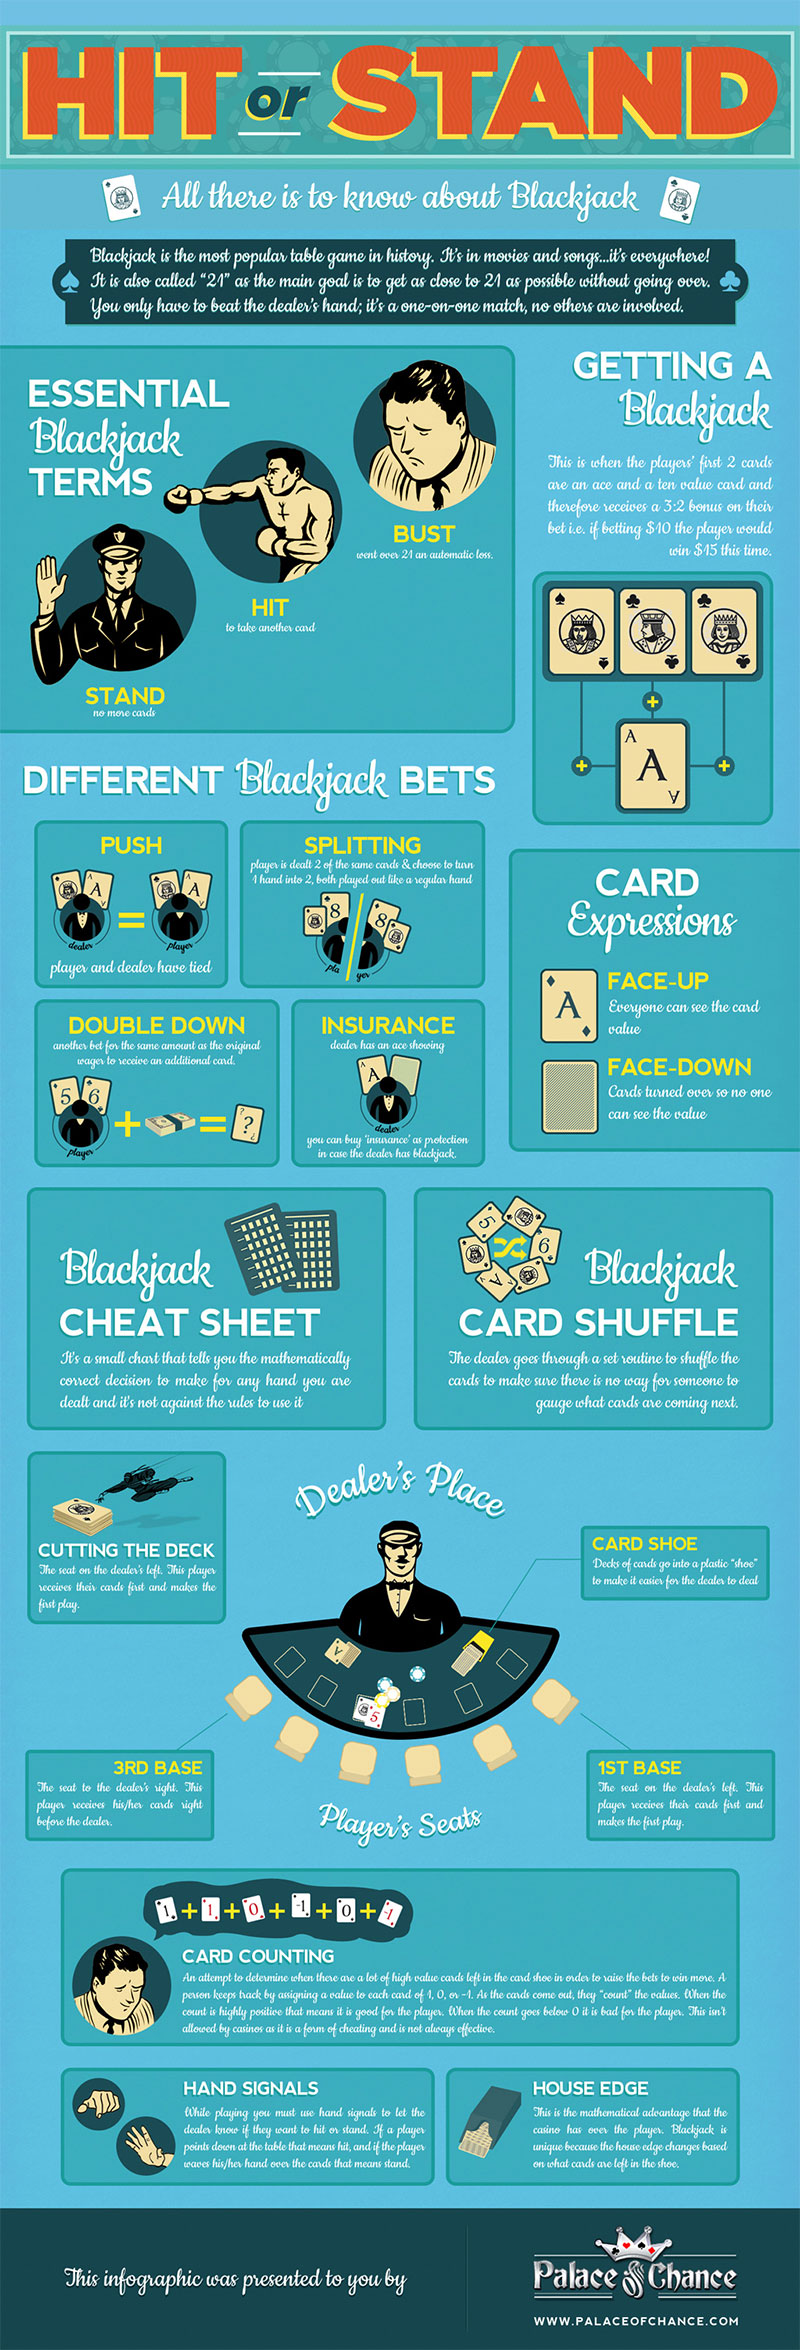 Blackjack basics for beginners - infographic